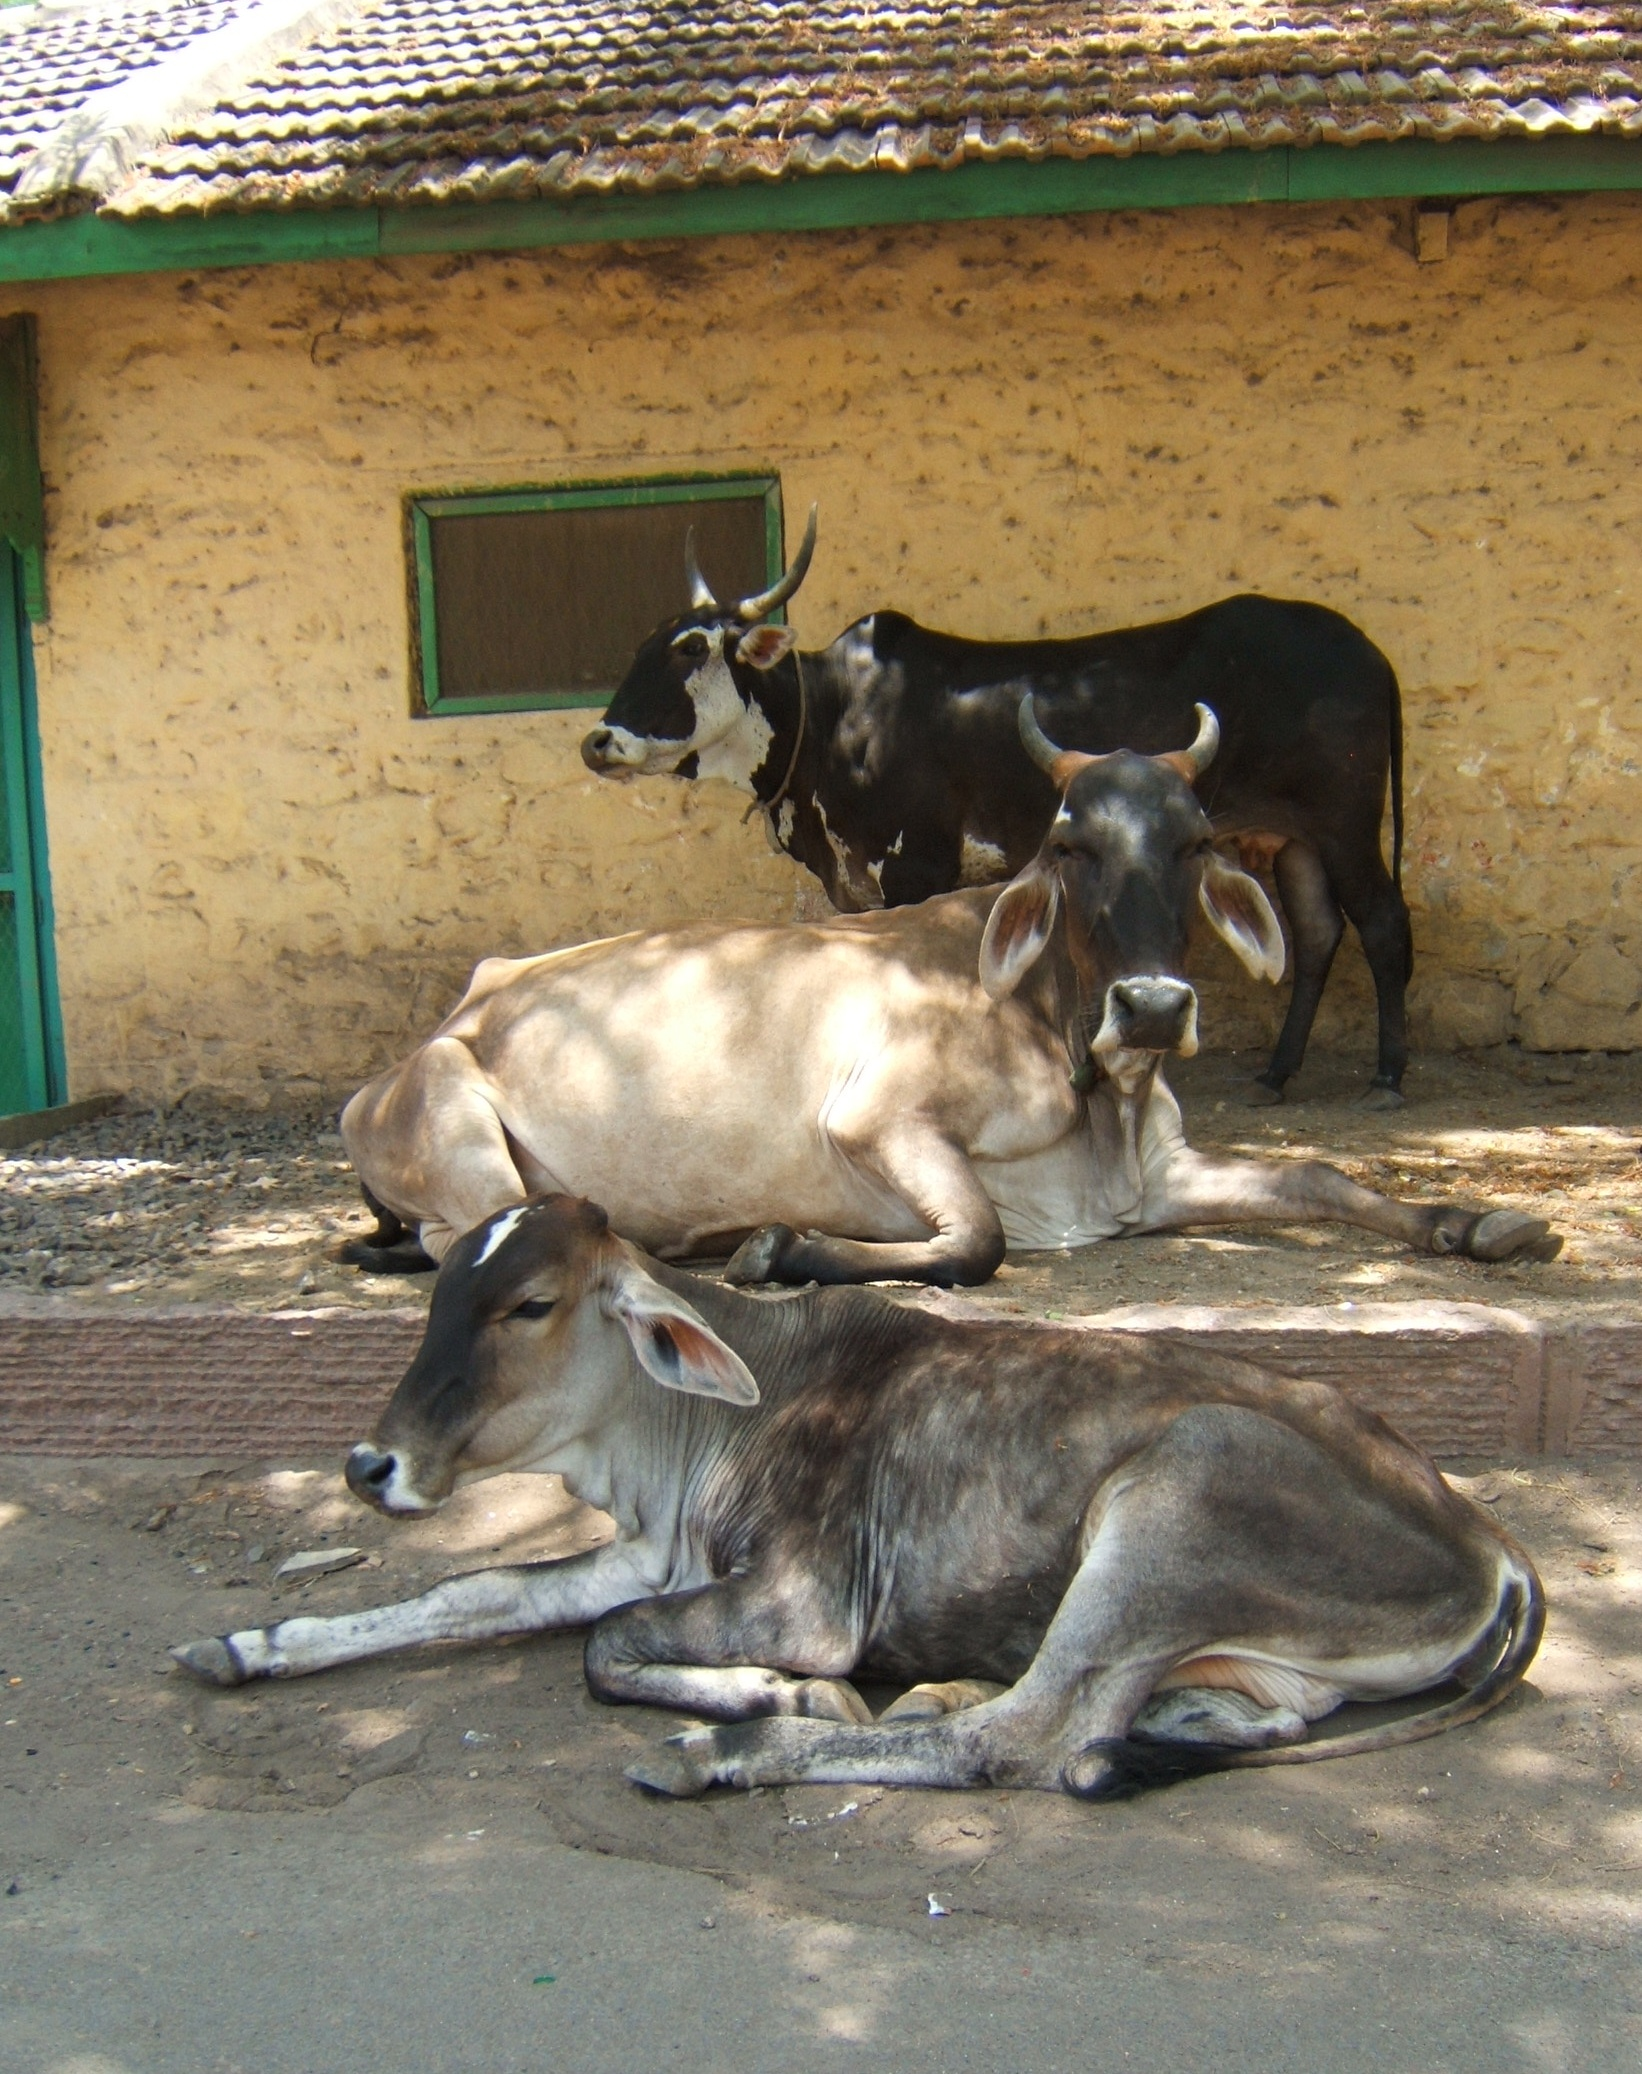 Description Cows in India 2007.JPG